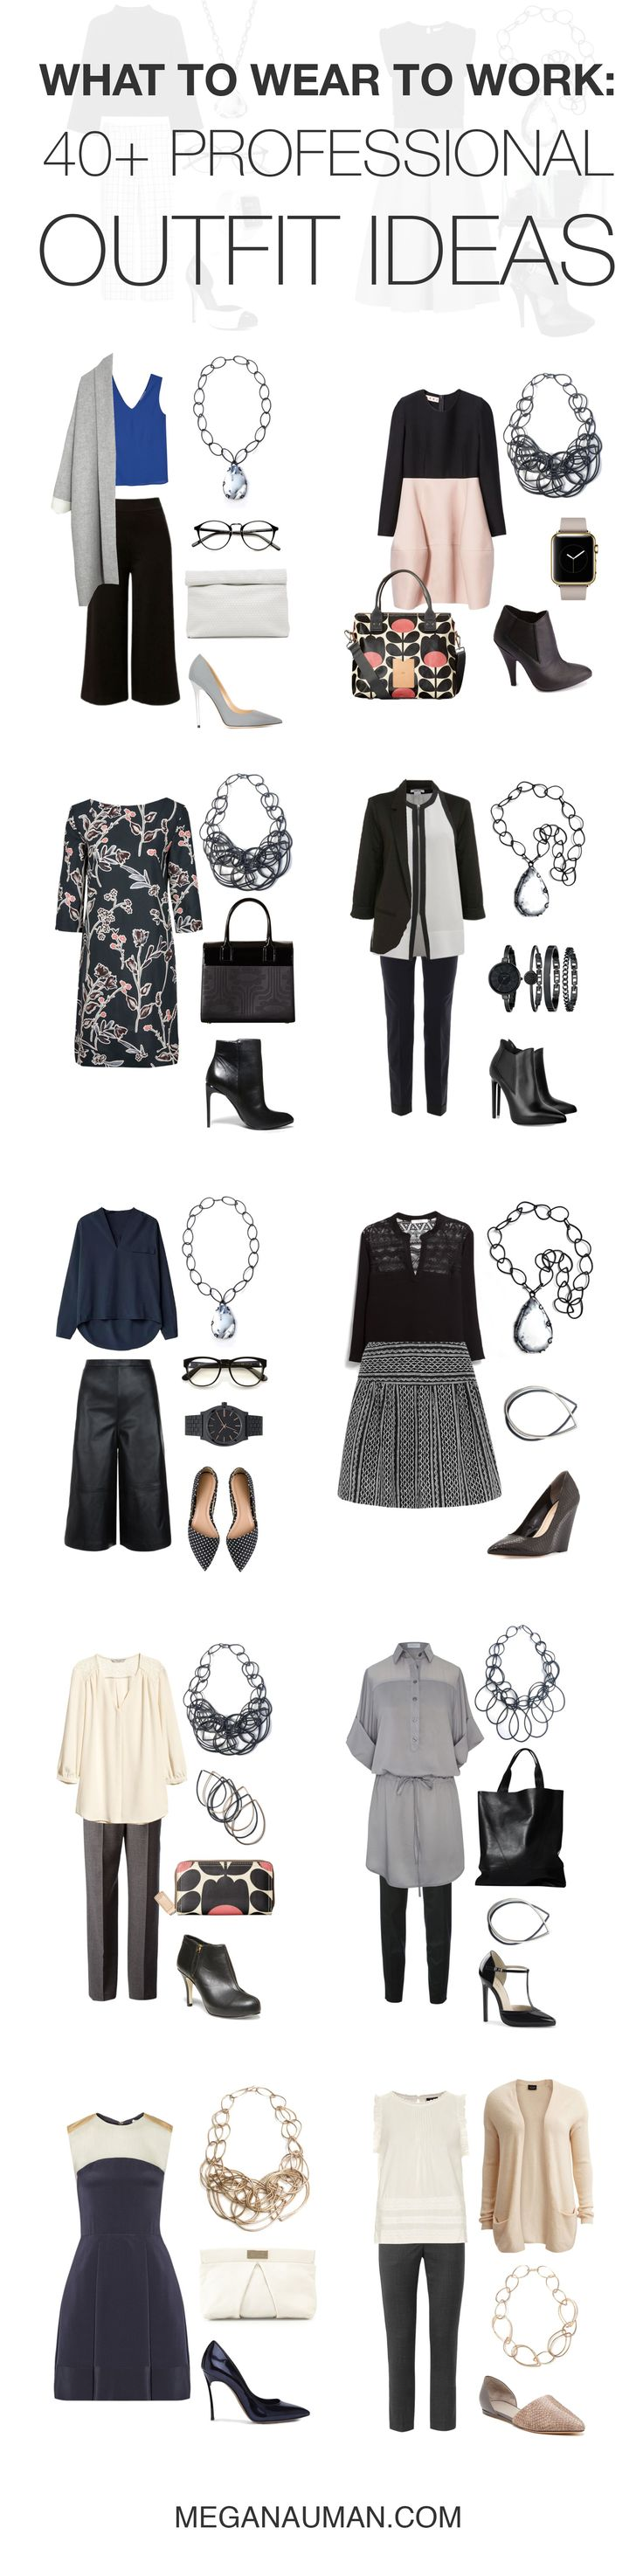 what to wear to work: 40+ professional outfit ideas // click through to see all the looks